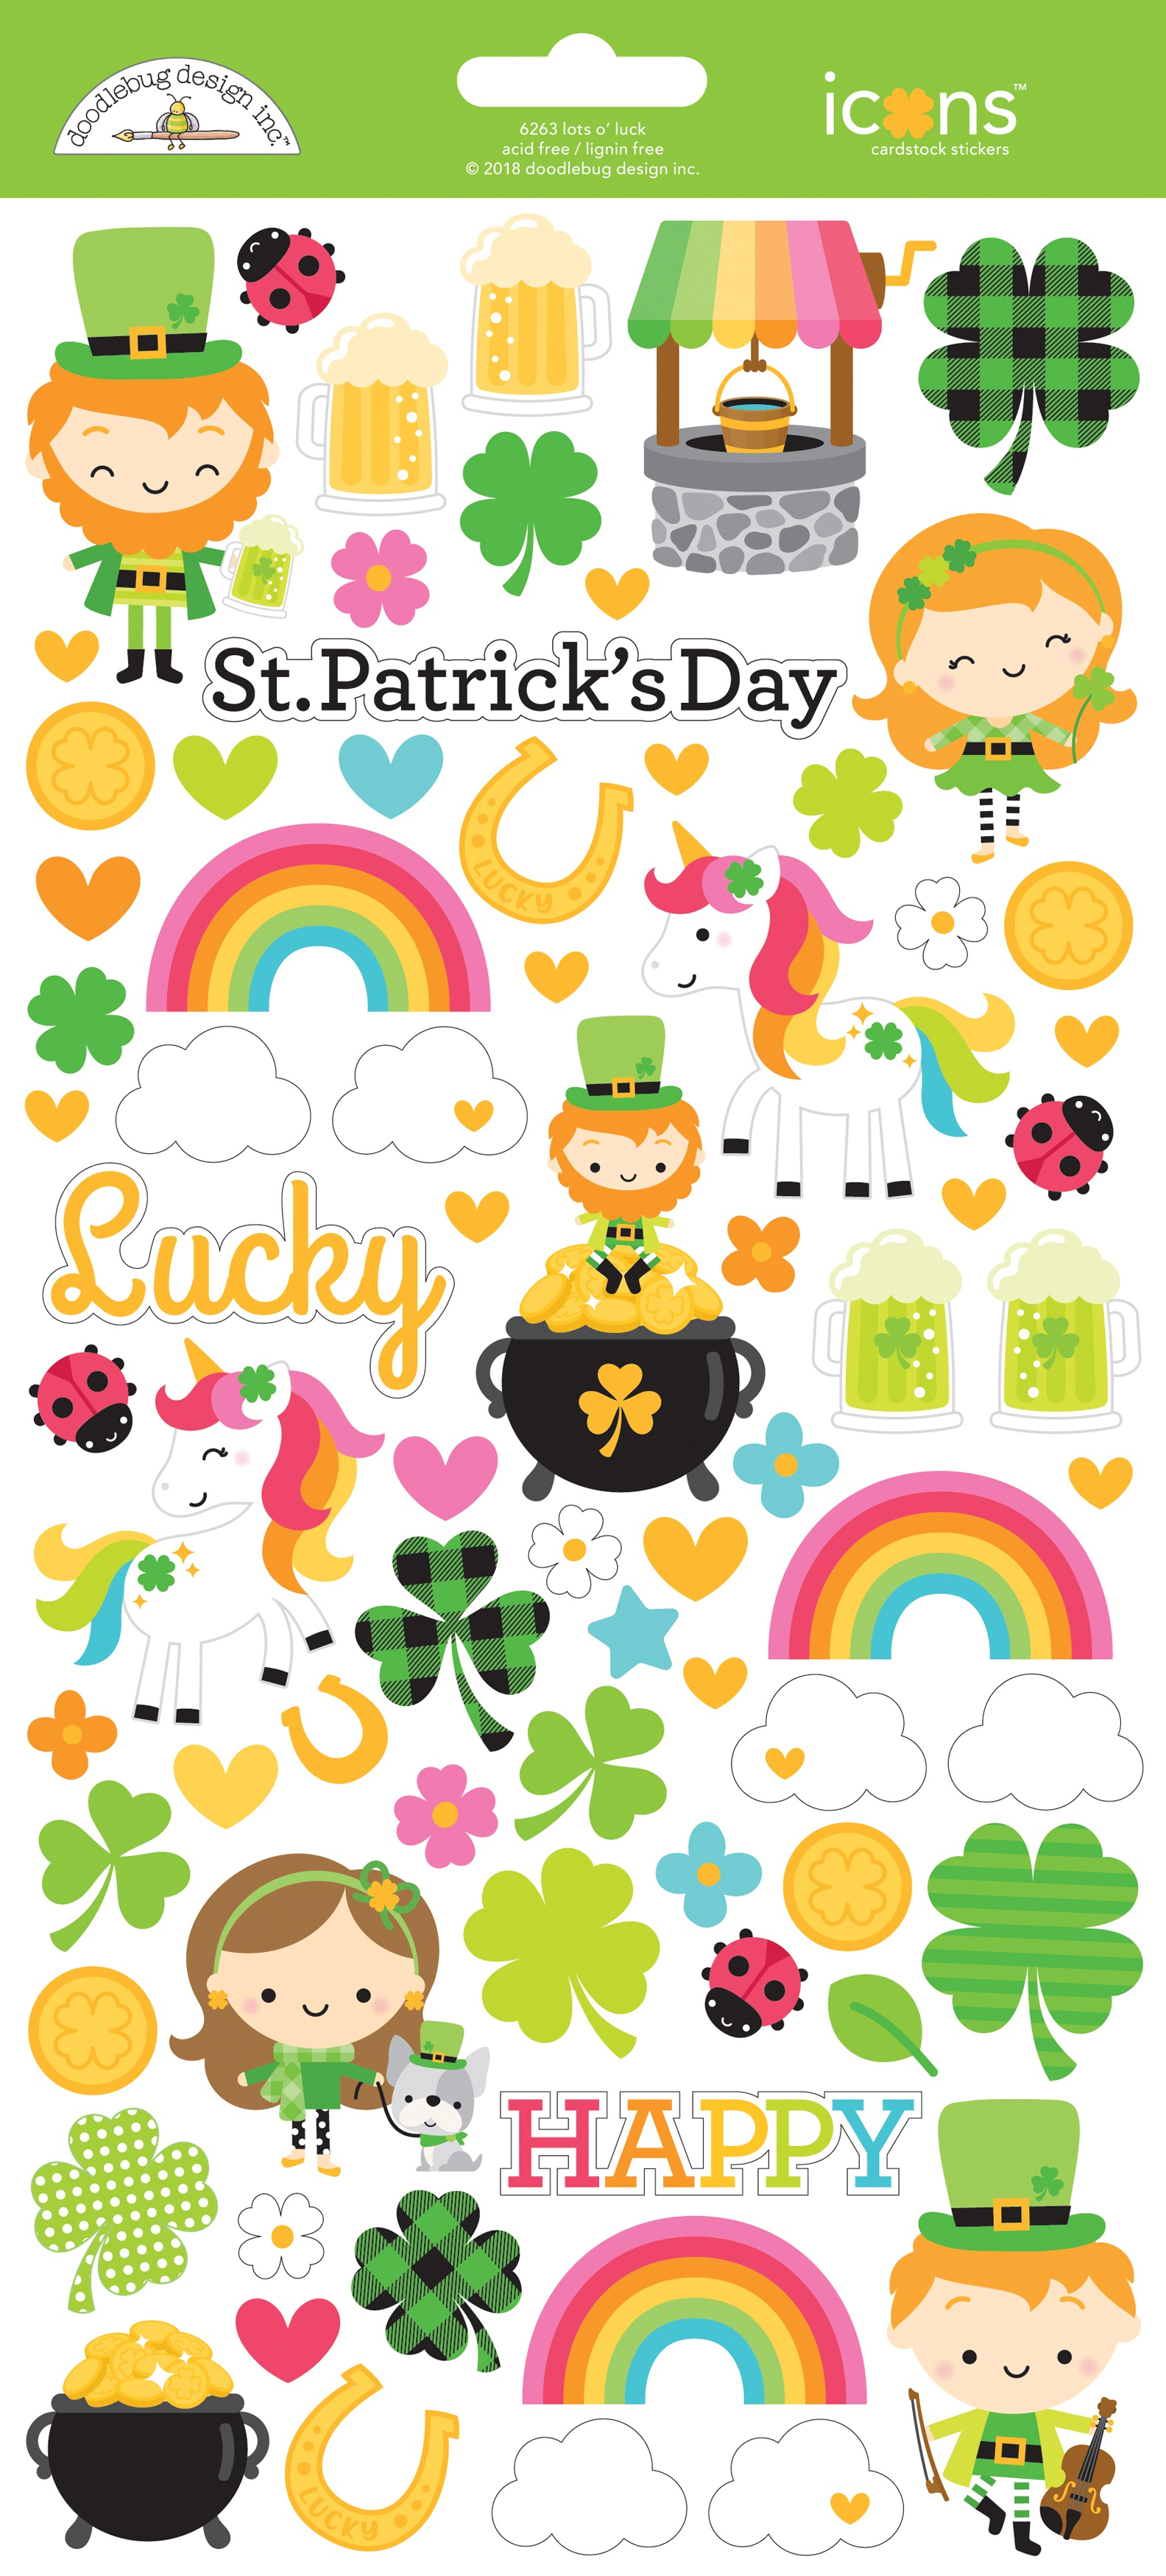 Doodlebug Cardstock Stickers 6X13-Lots O'luck Icons